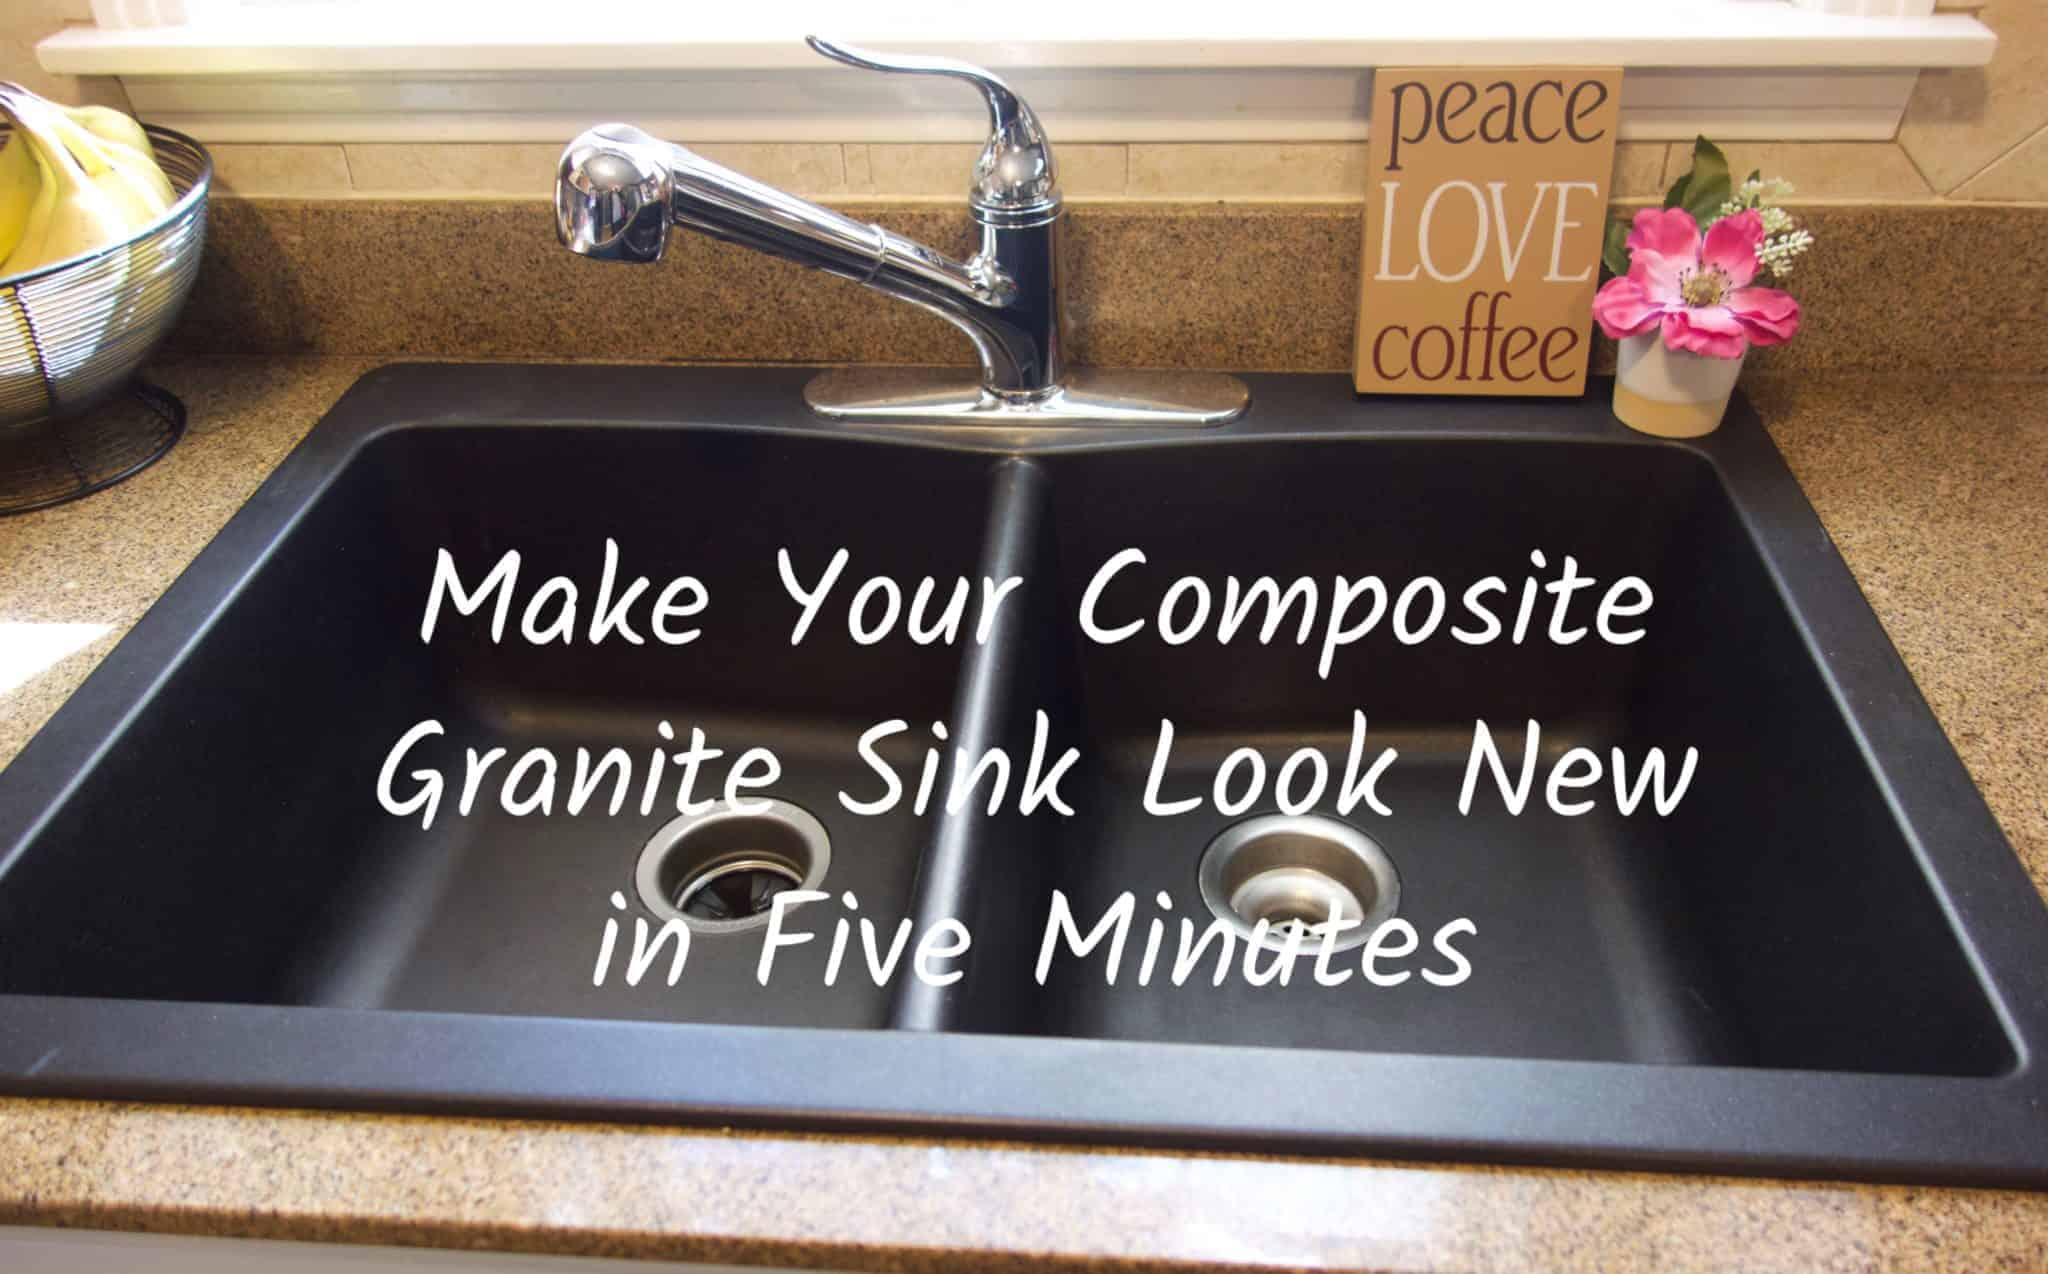 Composite Granite Kitchen Sink Make Your Composite Granite Sink Look New In 5 Minutes Health